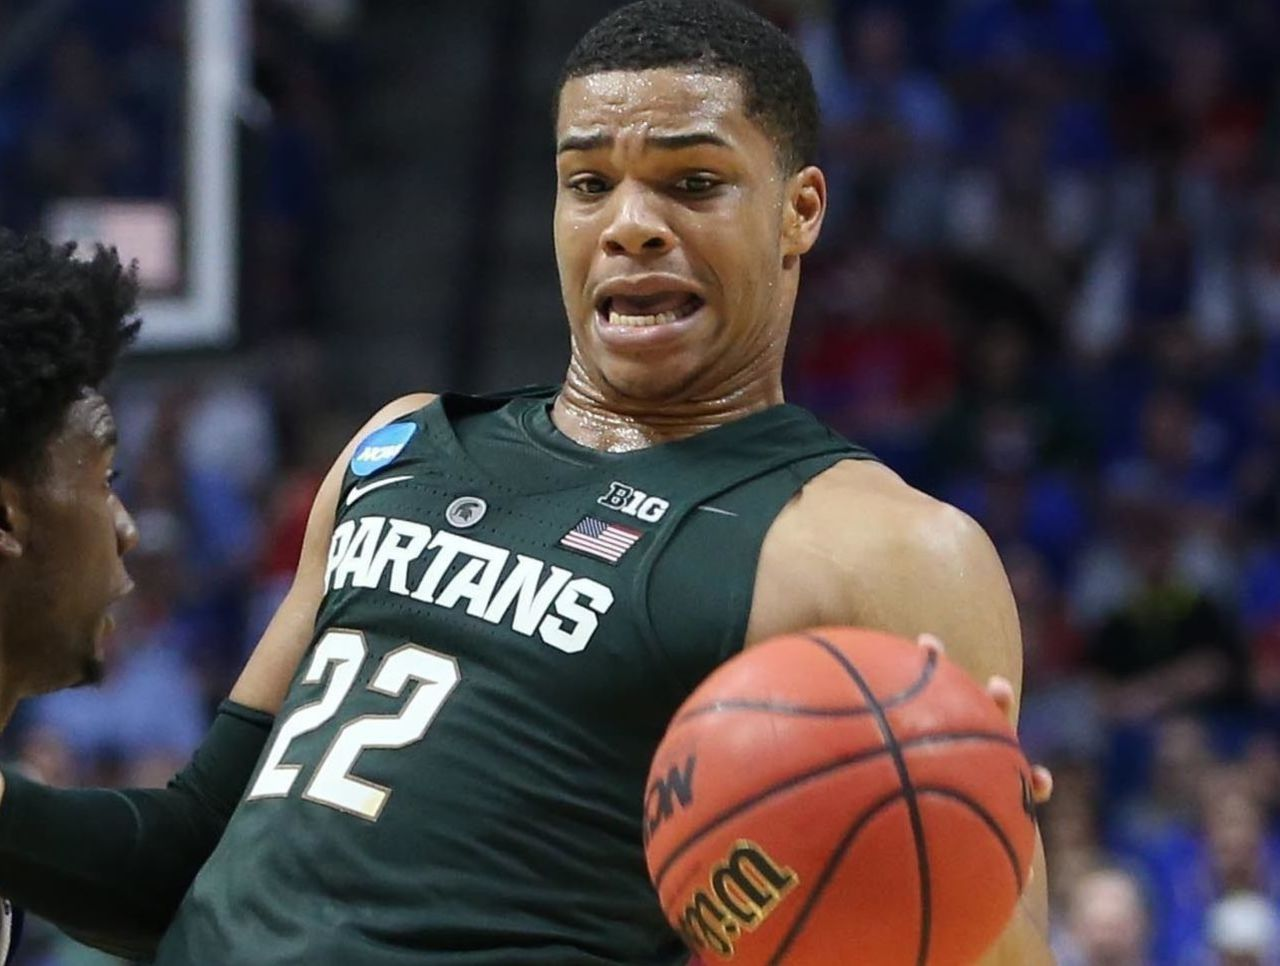 Cropped 2017 03 20t023842z 1876273180 nocid rtrmadp 3 ncaa basketball ncaa tournament second round kansas vs michigan state